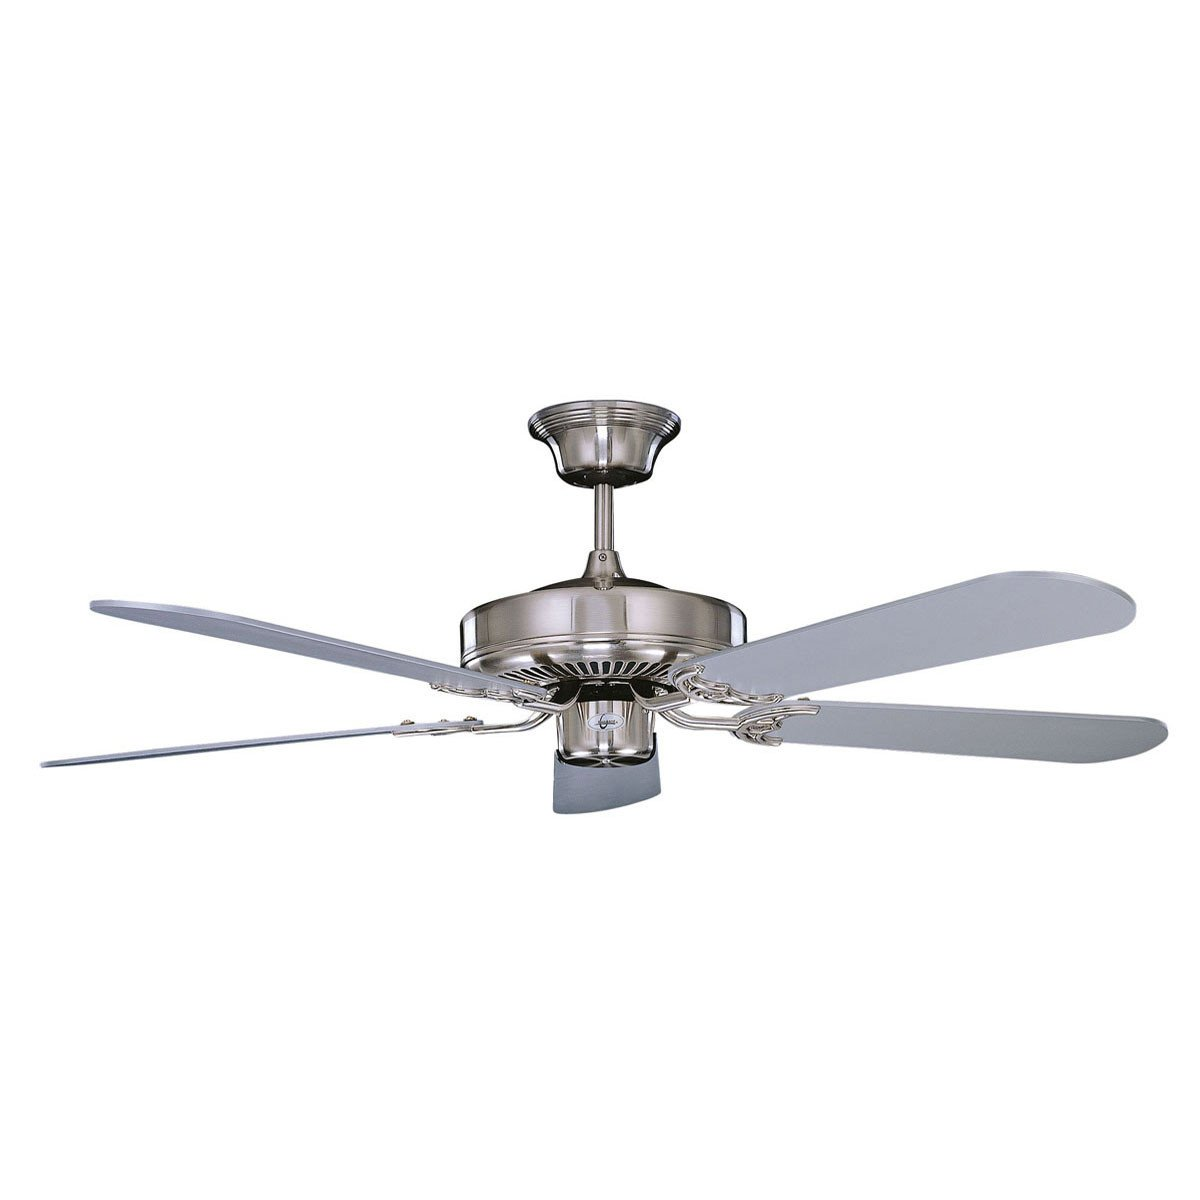 "Concord Fans Decorama Energy Saver Modern 52"" Stainless Steel Ceiling Fan"